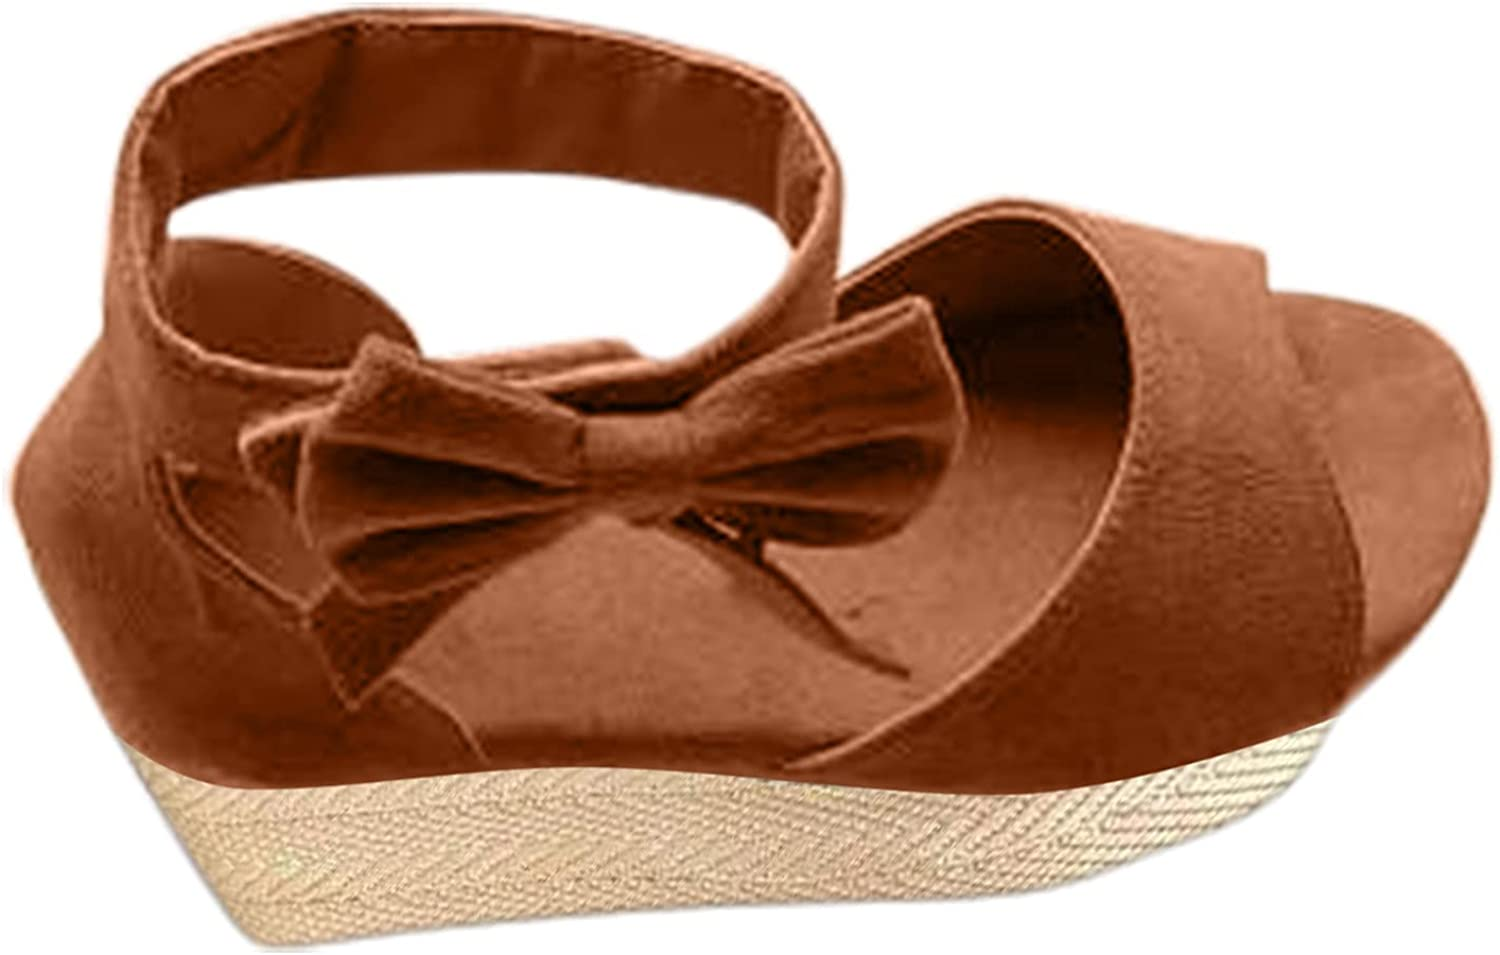 USYFAKGH Comfy Sandals For Women Women's Fashion Bowknot Wedge H